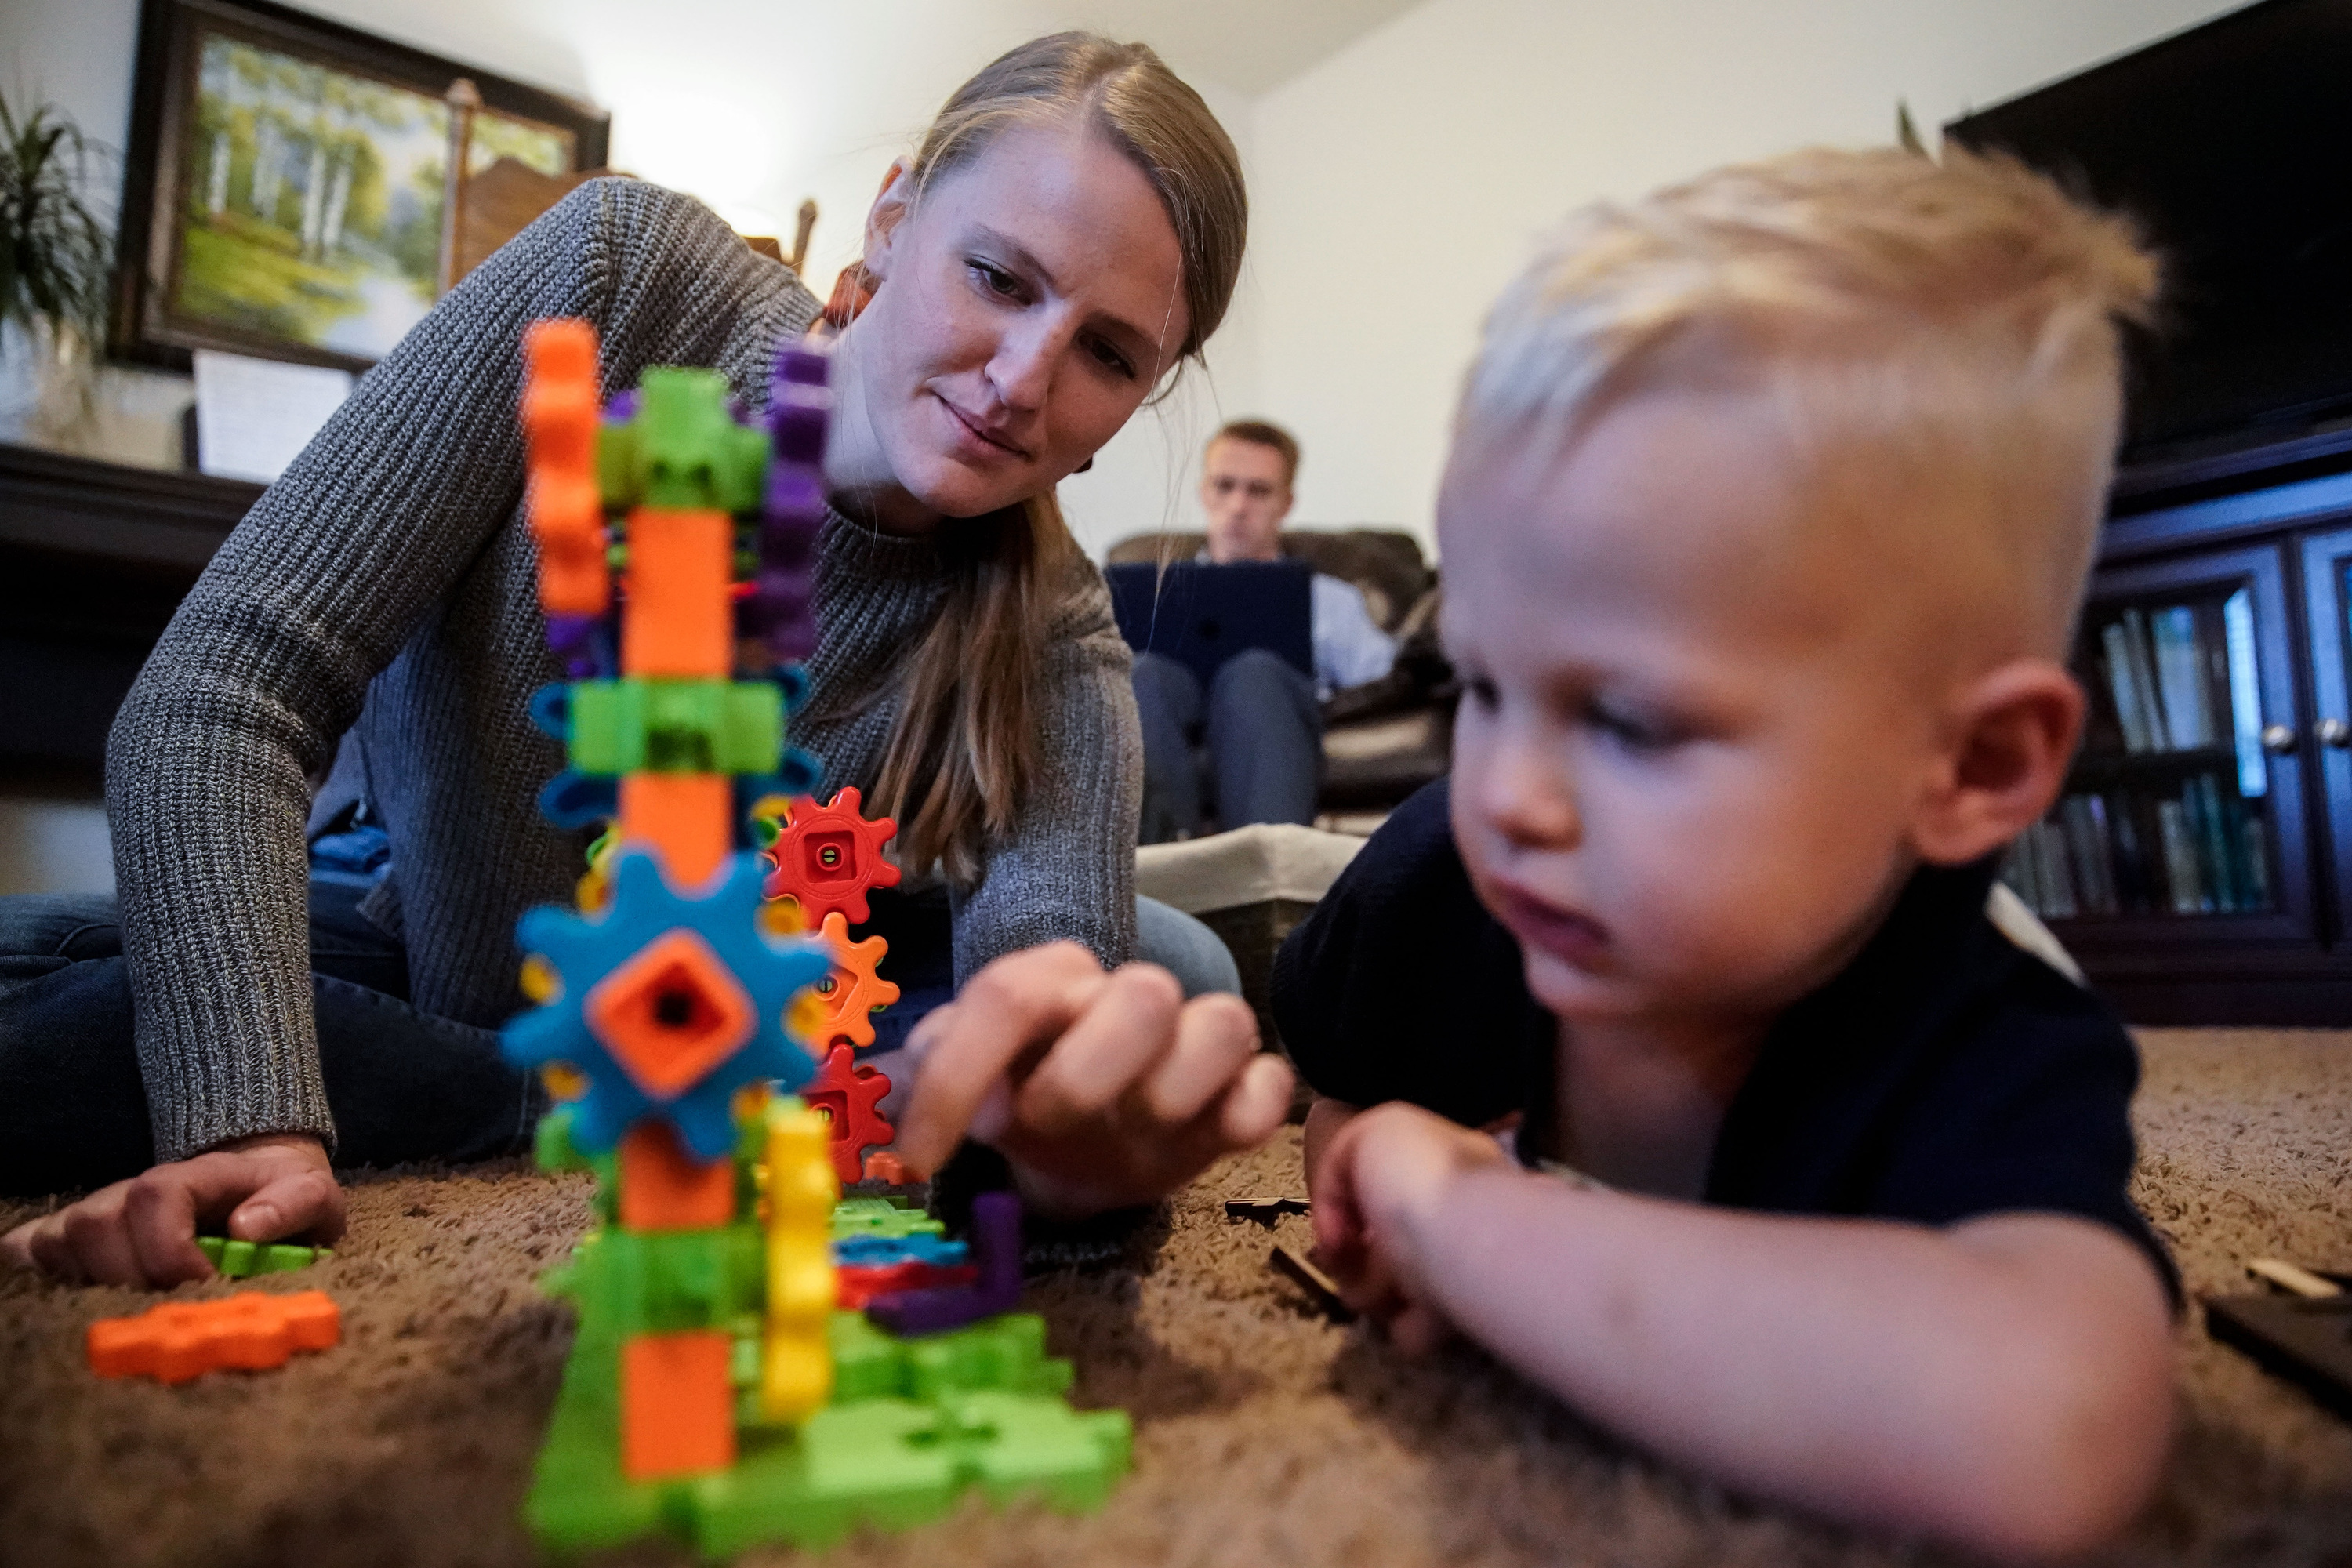 Elissa George plays with her son Tanner, 2, as her husband Austen George works in the background at their house in Provo on Friday, Oct. 8, 2021.